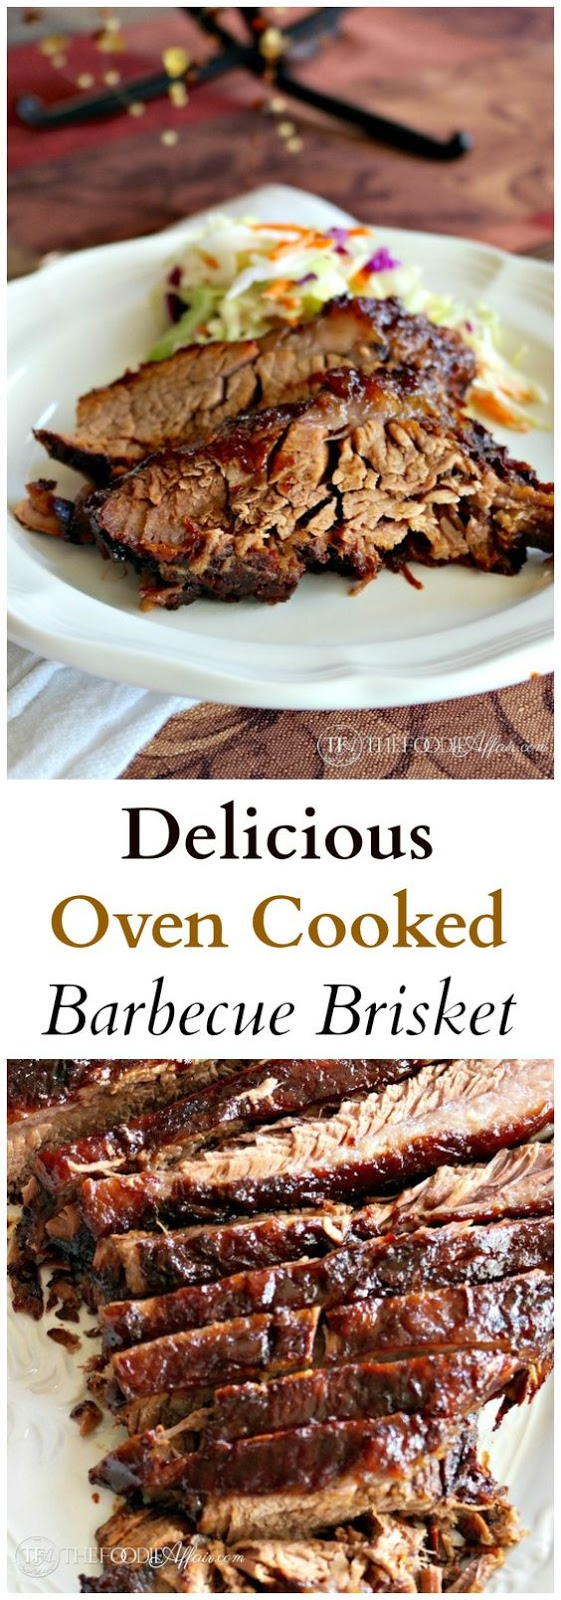 DELICIOUS OVEN COOKED BARBECUE BRISKET   #DESSERTS #HEALTHYFOOD #EASYRECIPES #DINNER #LAUCH #DELICIOUS #EASY #HOLIDAYS #RECIPE #SPECIALDIET #WORLDCUISINE #CAKE #APPETIZERS #HEALTHYRECIPES #DRINKS #COOKINGMETHOD #ITALIANRECIPES #MEAT #VEGANRECIPES #COOKIES #PASTA #FRUIT #SALAD #SOUPAPPETIZERS #NONALCOHOLICDRINKS #MEALPLANNING #VEGETABLES #SOUP #PASTRY #CHOCOLATE #DAIRY #ALCOHOLICDRINKS #BULGURSALAD #BAKING #SNACKS #BEEFRECIPES #MEATAPPETIZERS #MEXICANRECIPES #BREAD #ASIANRECIPES #SEAFOODAPPETIZERS #MUFFINS #BREAKFASTANDBRUNCH #CONDIMENTS #CUPCAKES #CHEESE #CHICKENRECIPES #PIE #COFFEE #NOBAKEDESSERTS #HEALTHYSNACKS #SEAFOOD #GRAIN #LUNCHESDINNERS #MEXICAN #QUICKBREAD #LIQUOR